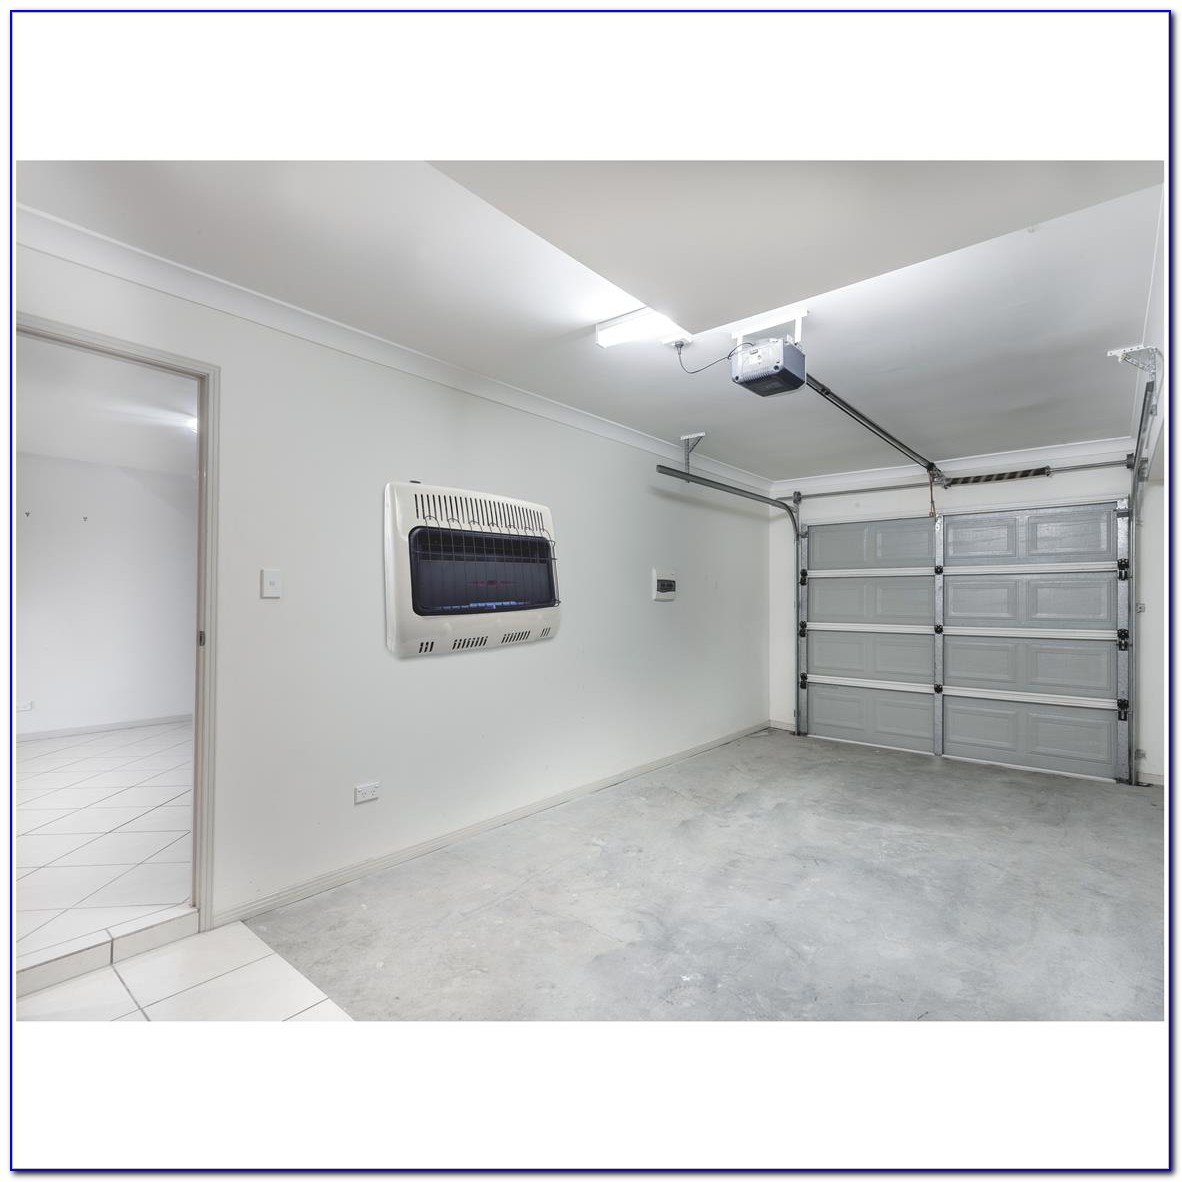 Overhead Electric Heaters For Garage